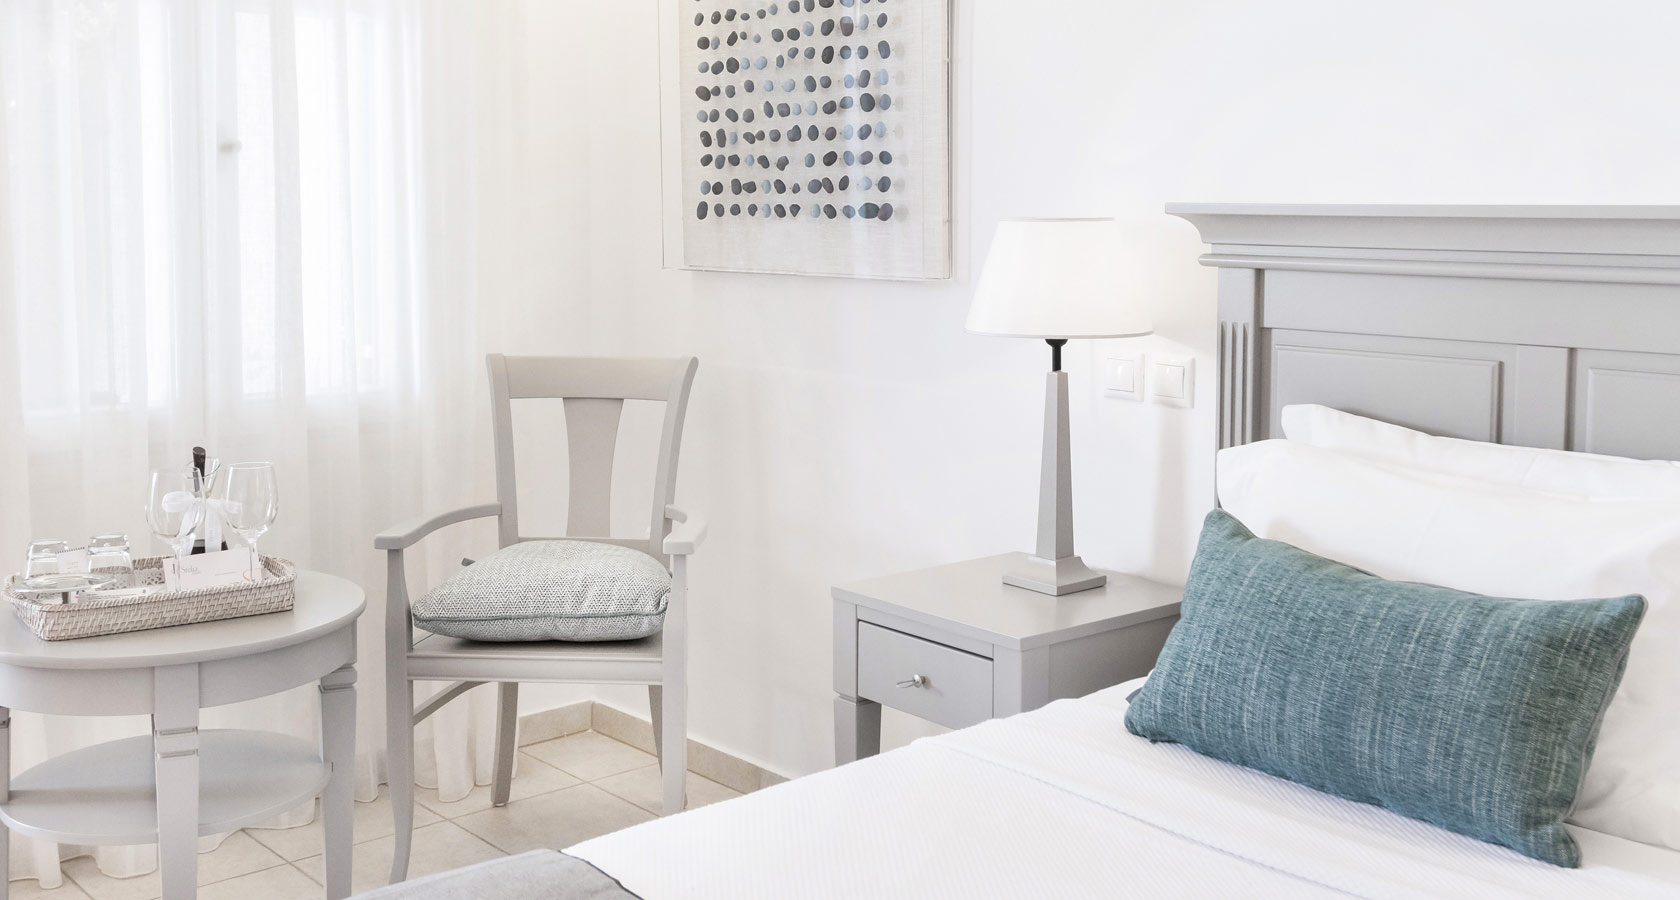 Stelia Mare Hotel in Paros – Two Bedroom Suite